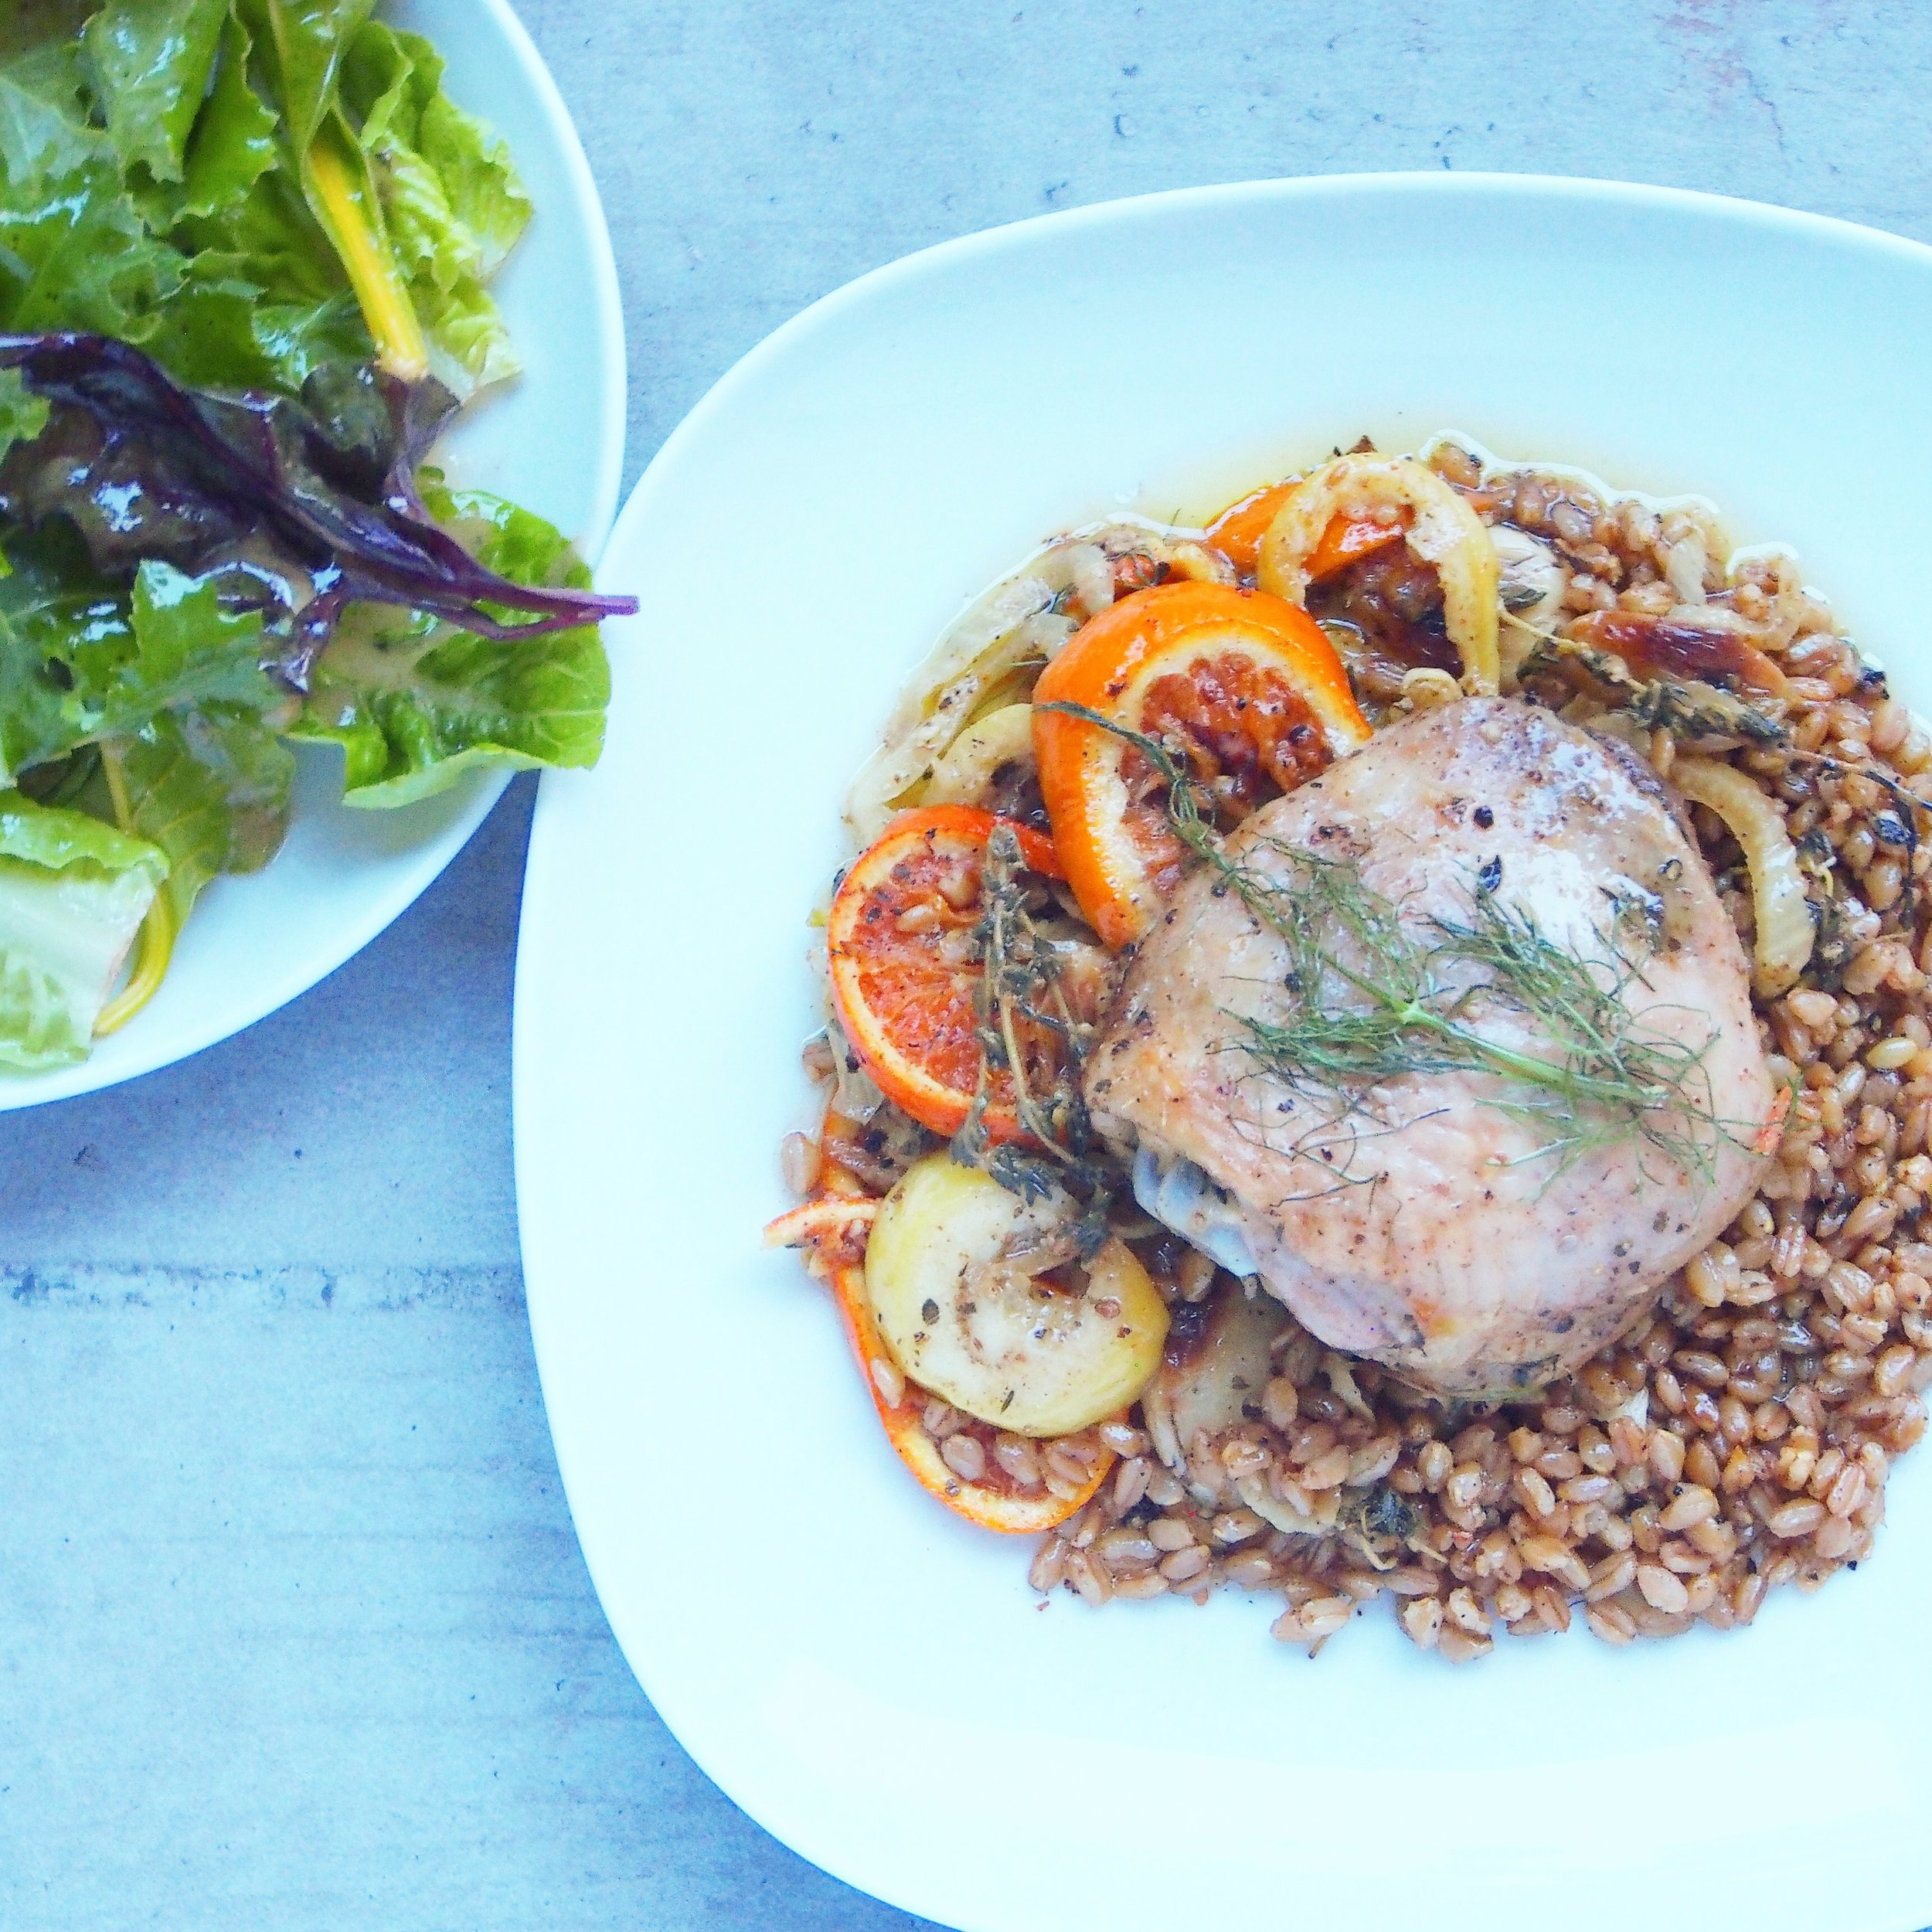 This chicken is served with oranges, lemons, and farro. Served with a simple side salad.